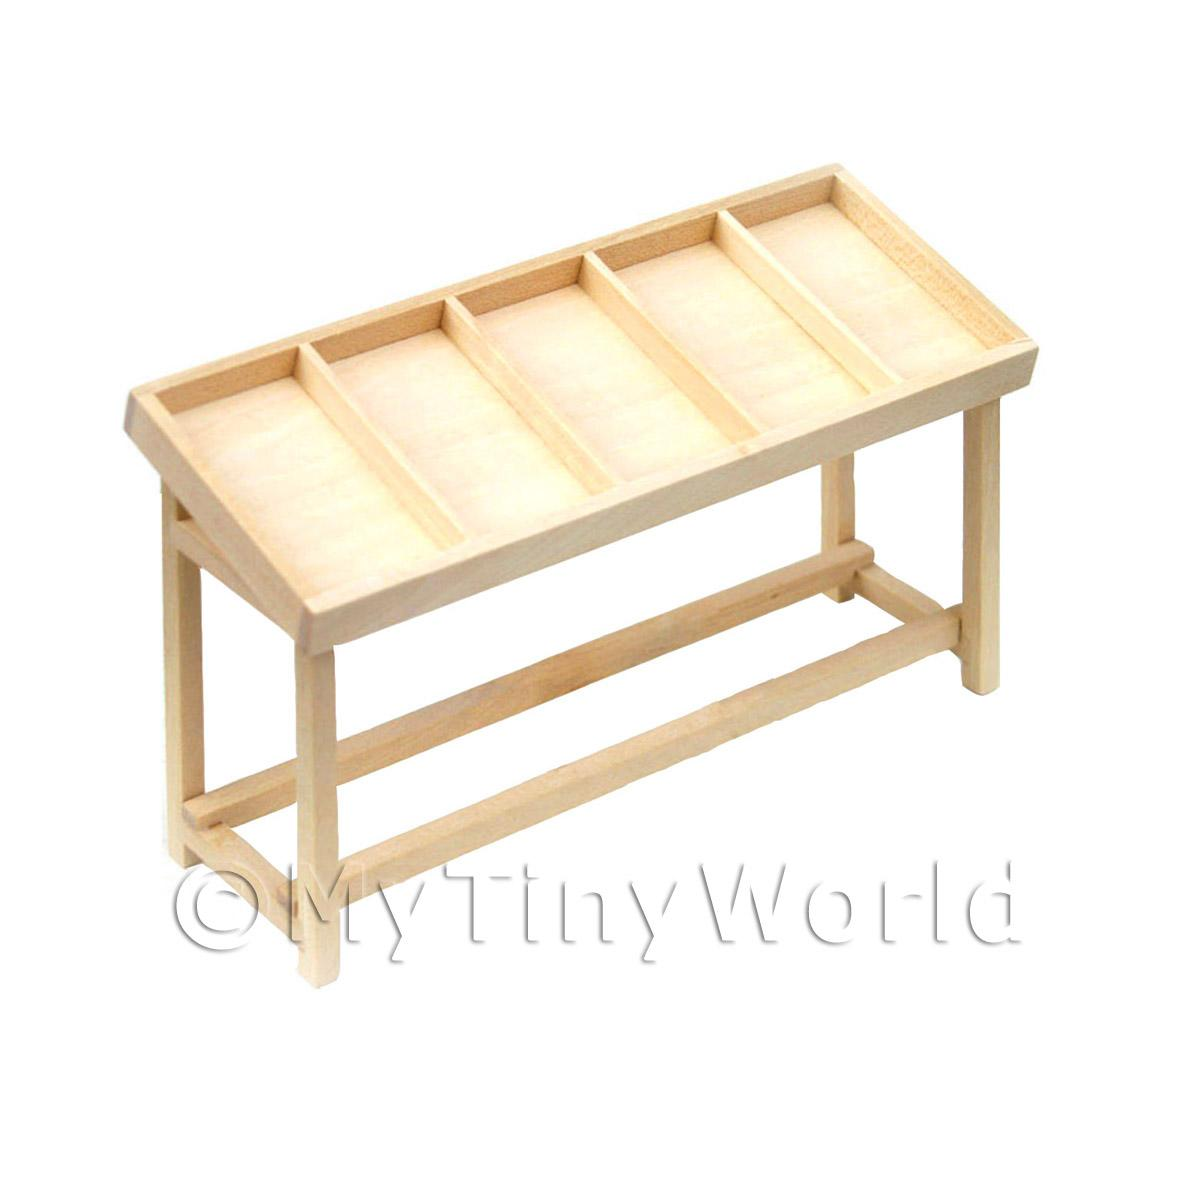 Dolls House Miniature Shop counter - 5 section - flat packed